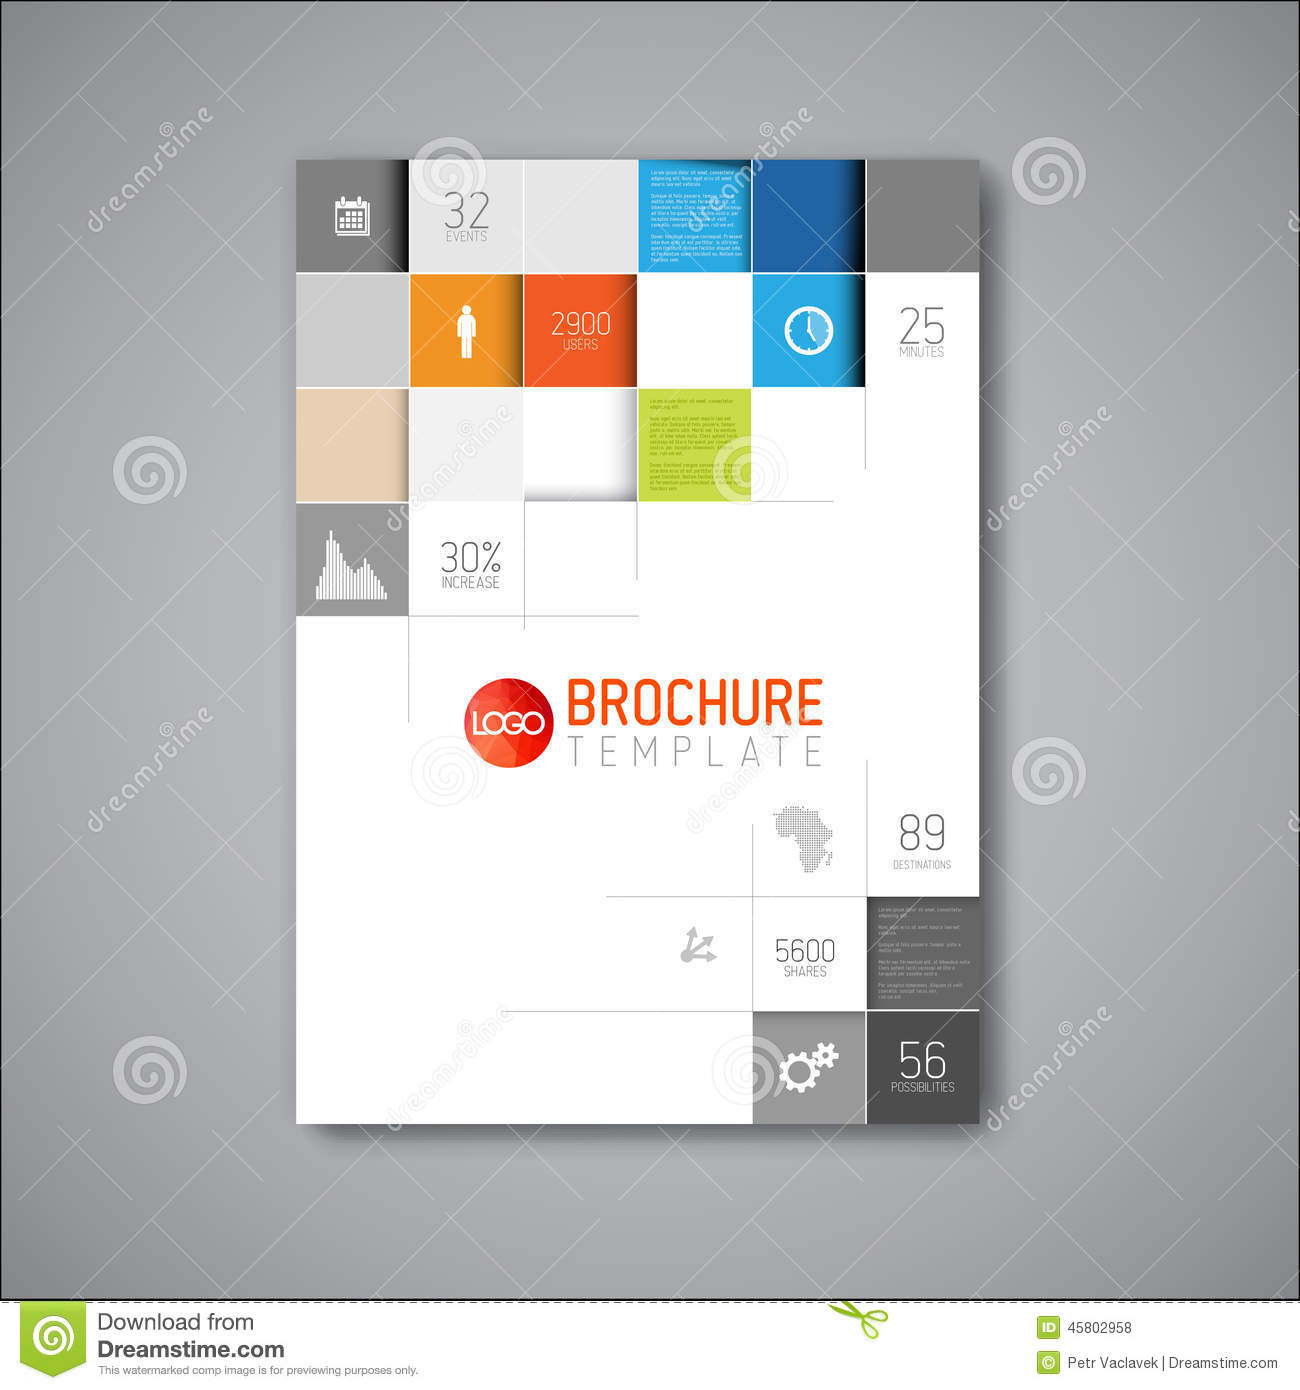 modern vector abstract brochure design template stock illustration